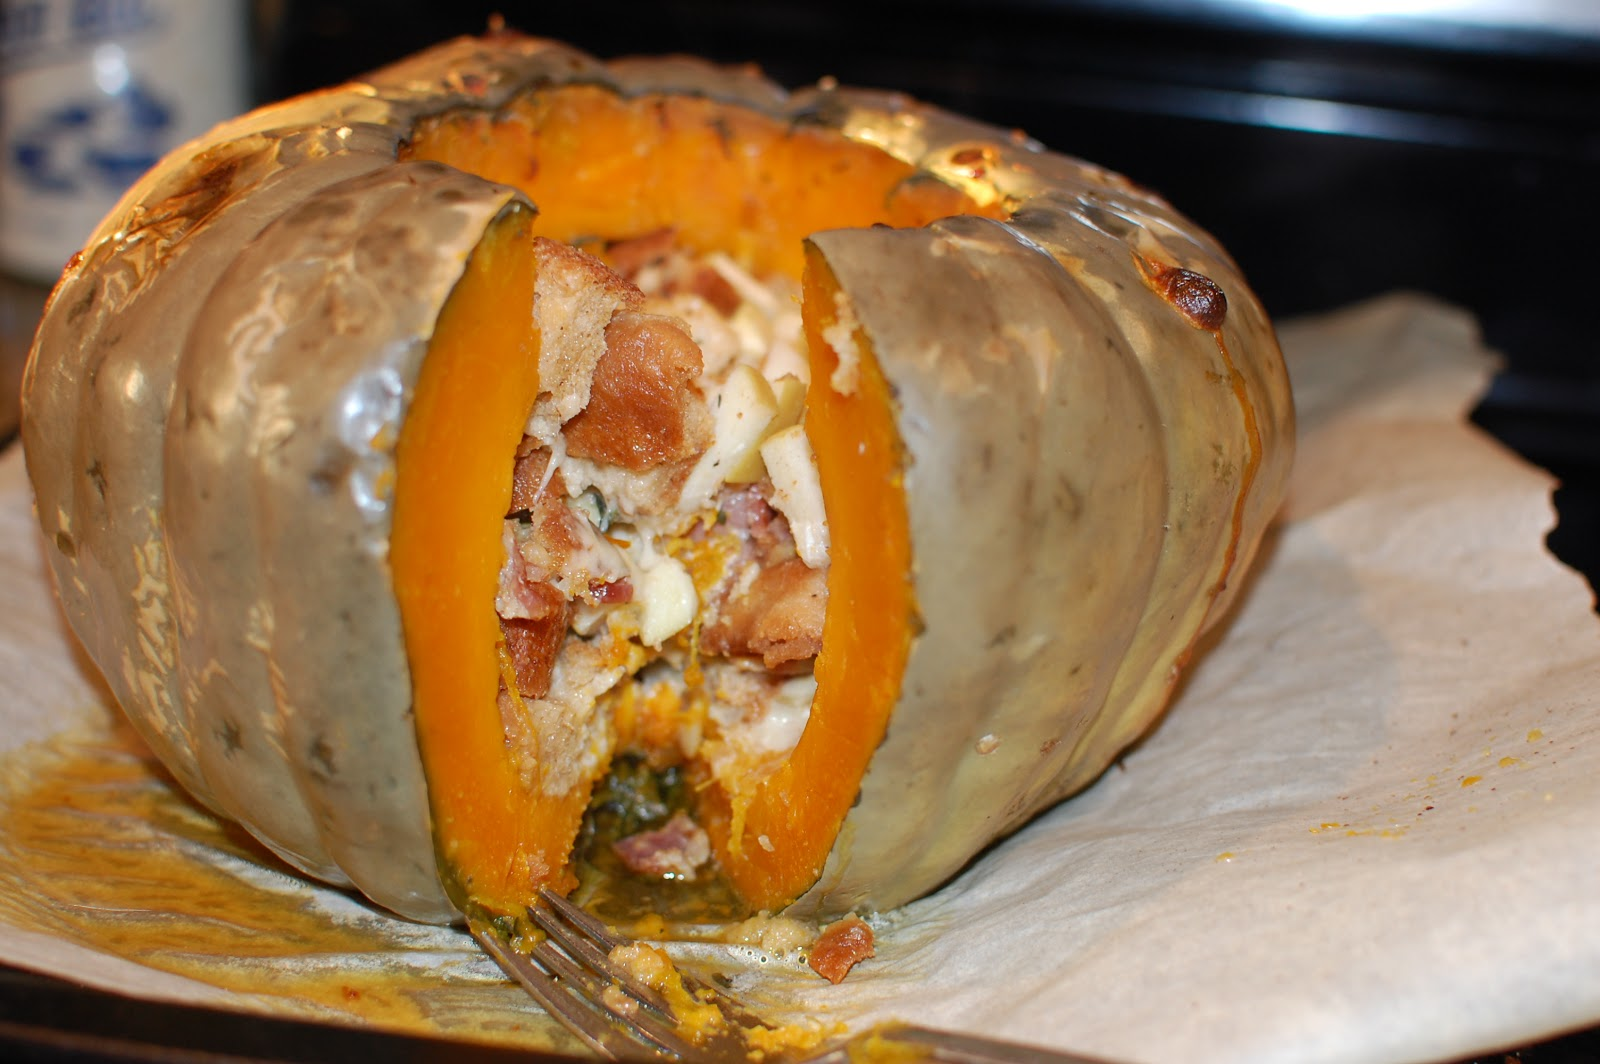 Baked, Stuffed Pumpkin (Pumpkin Stuffed With Everything Good)